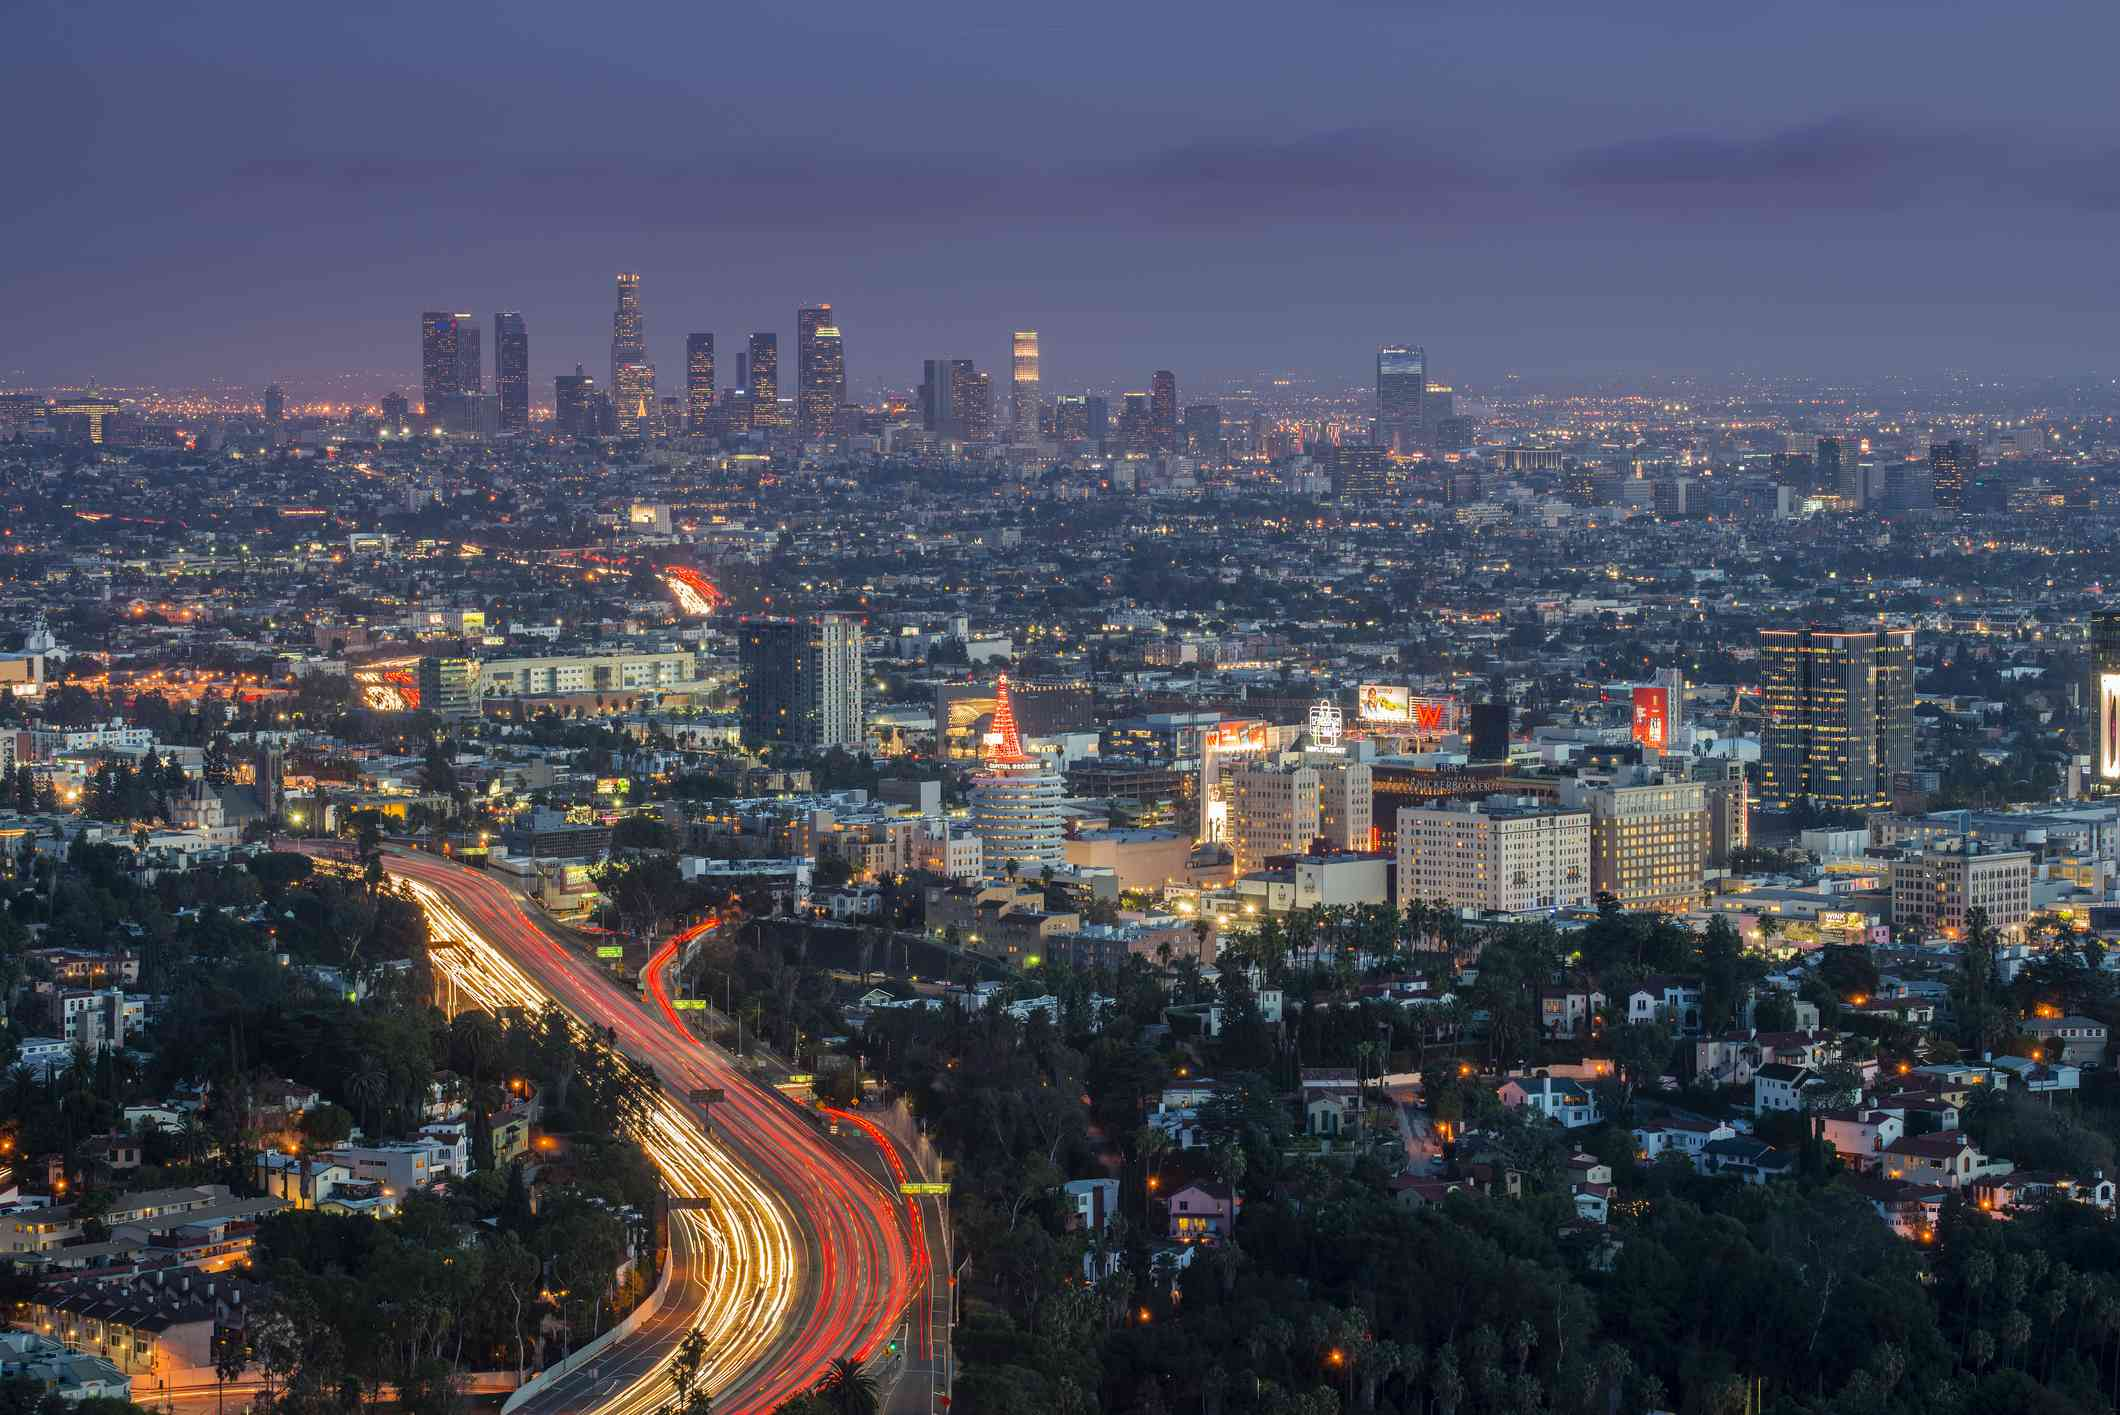 Driving in LA at Night: view of city streets from Mulholland Drive